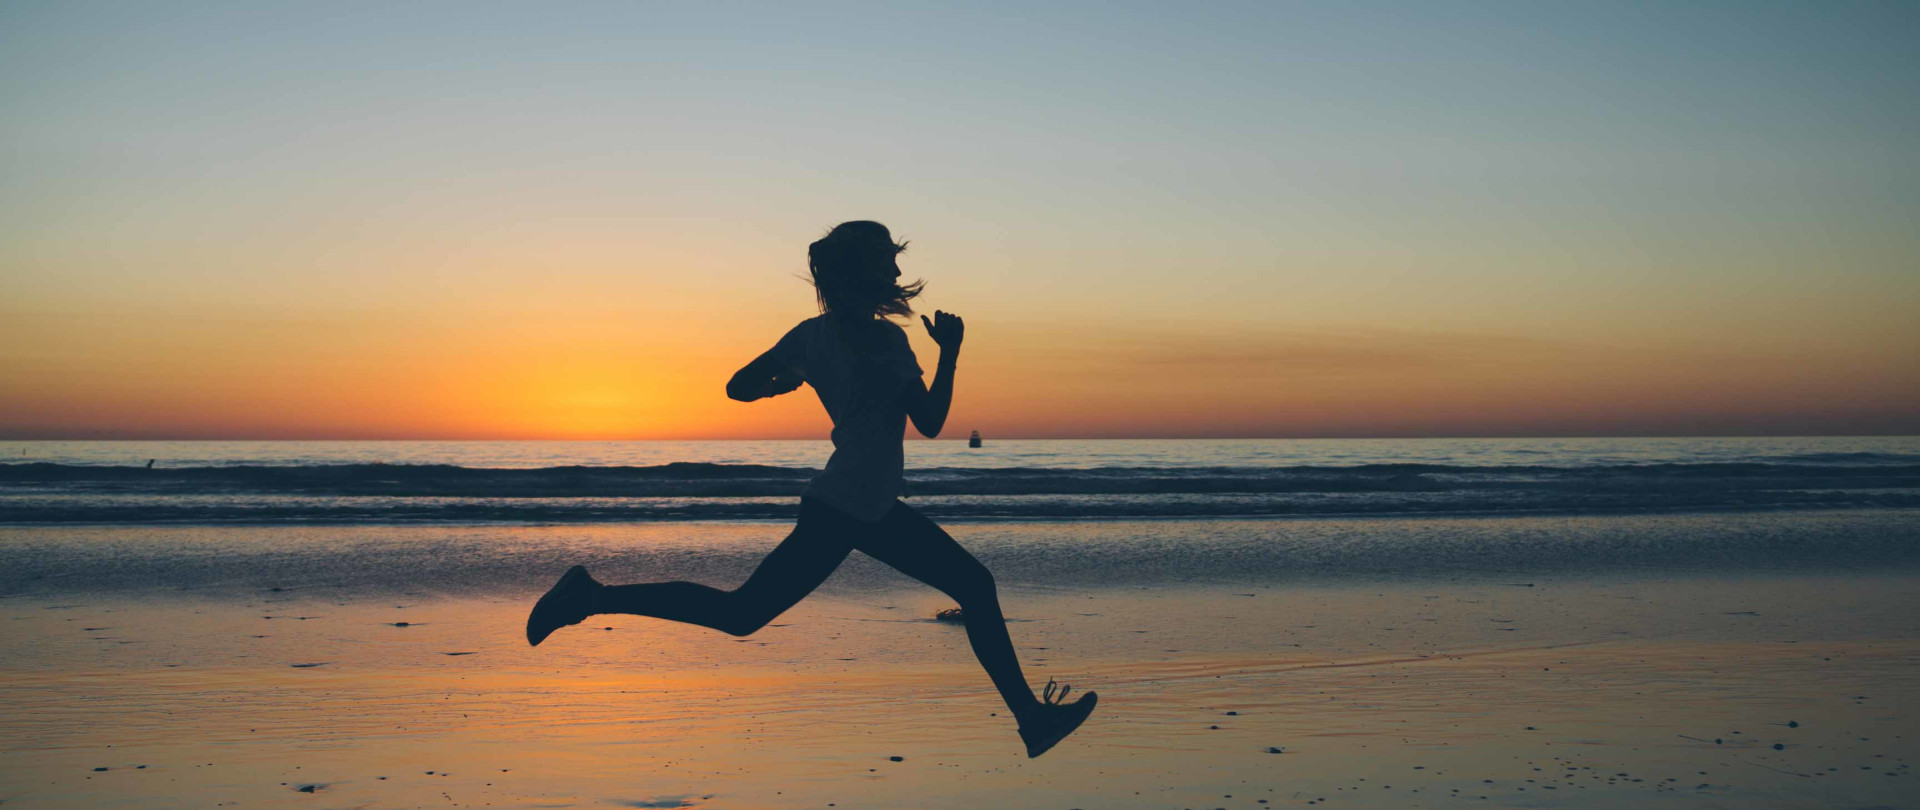 Running on the beach with Energi & AppleWatch Rocksauce Studios